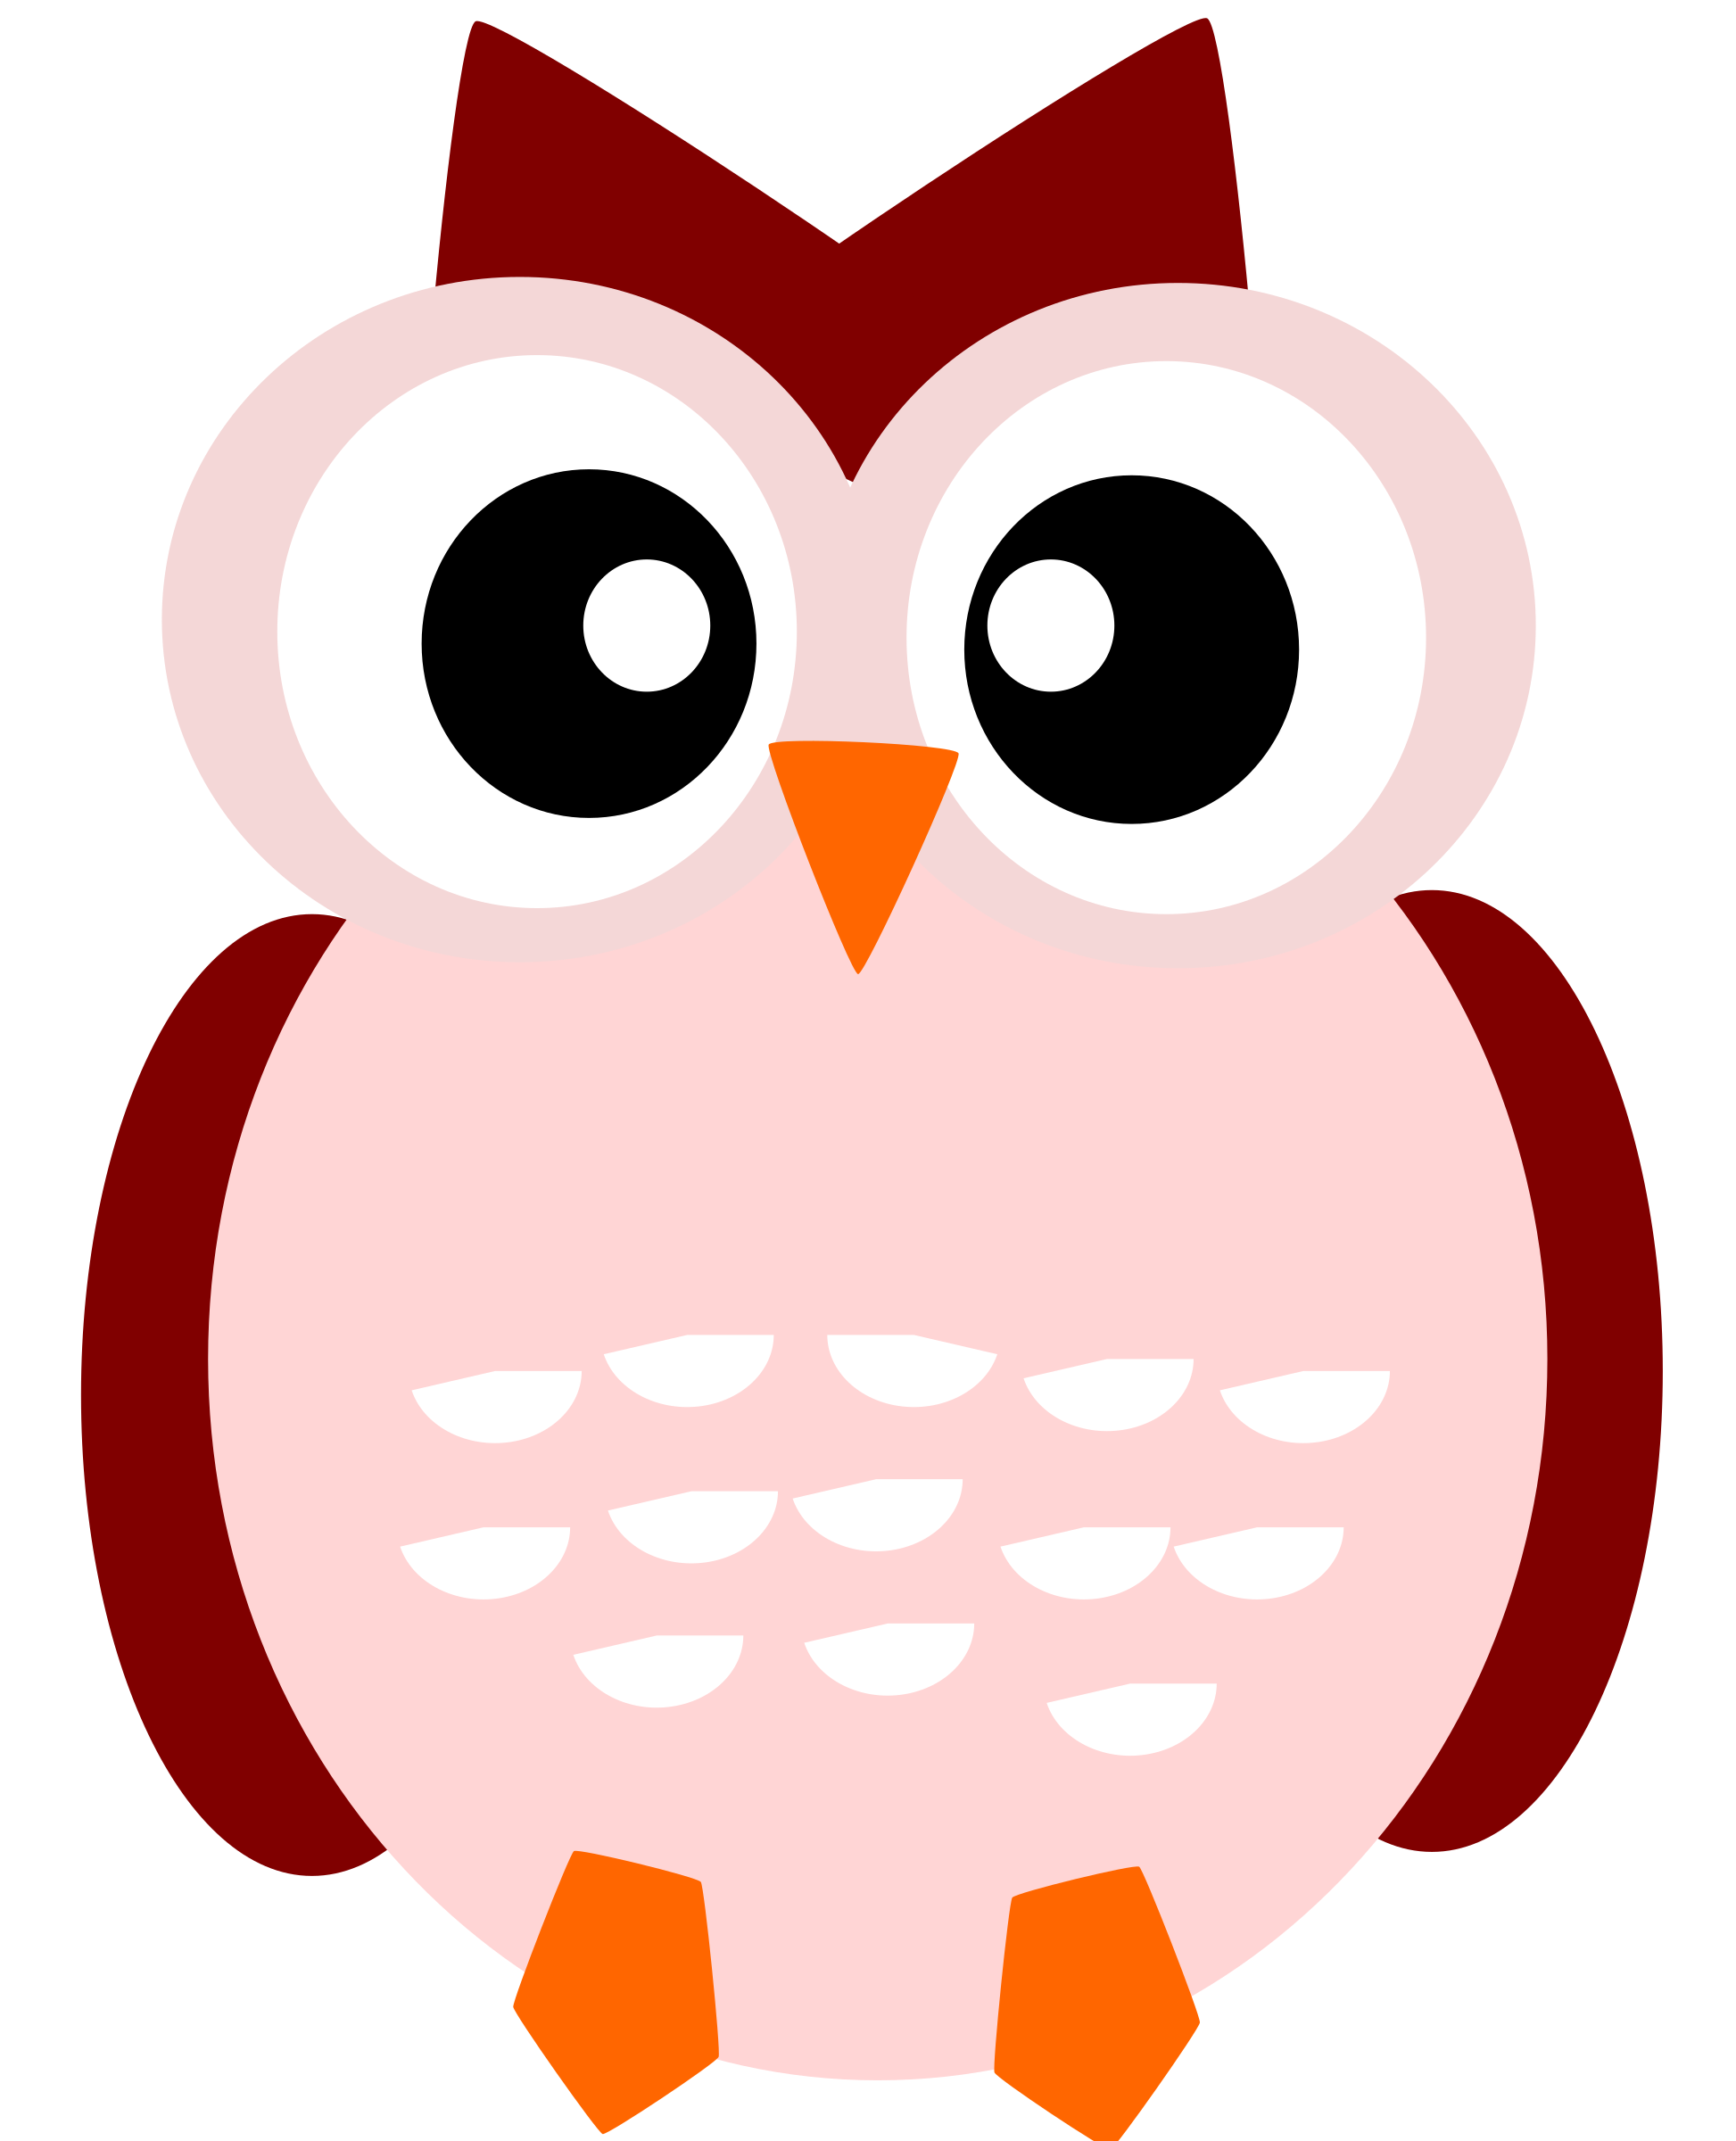 PNG Png Cute Transparent Png Cute.PNG Images..